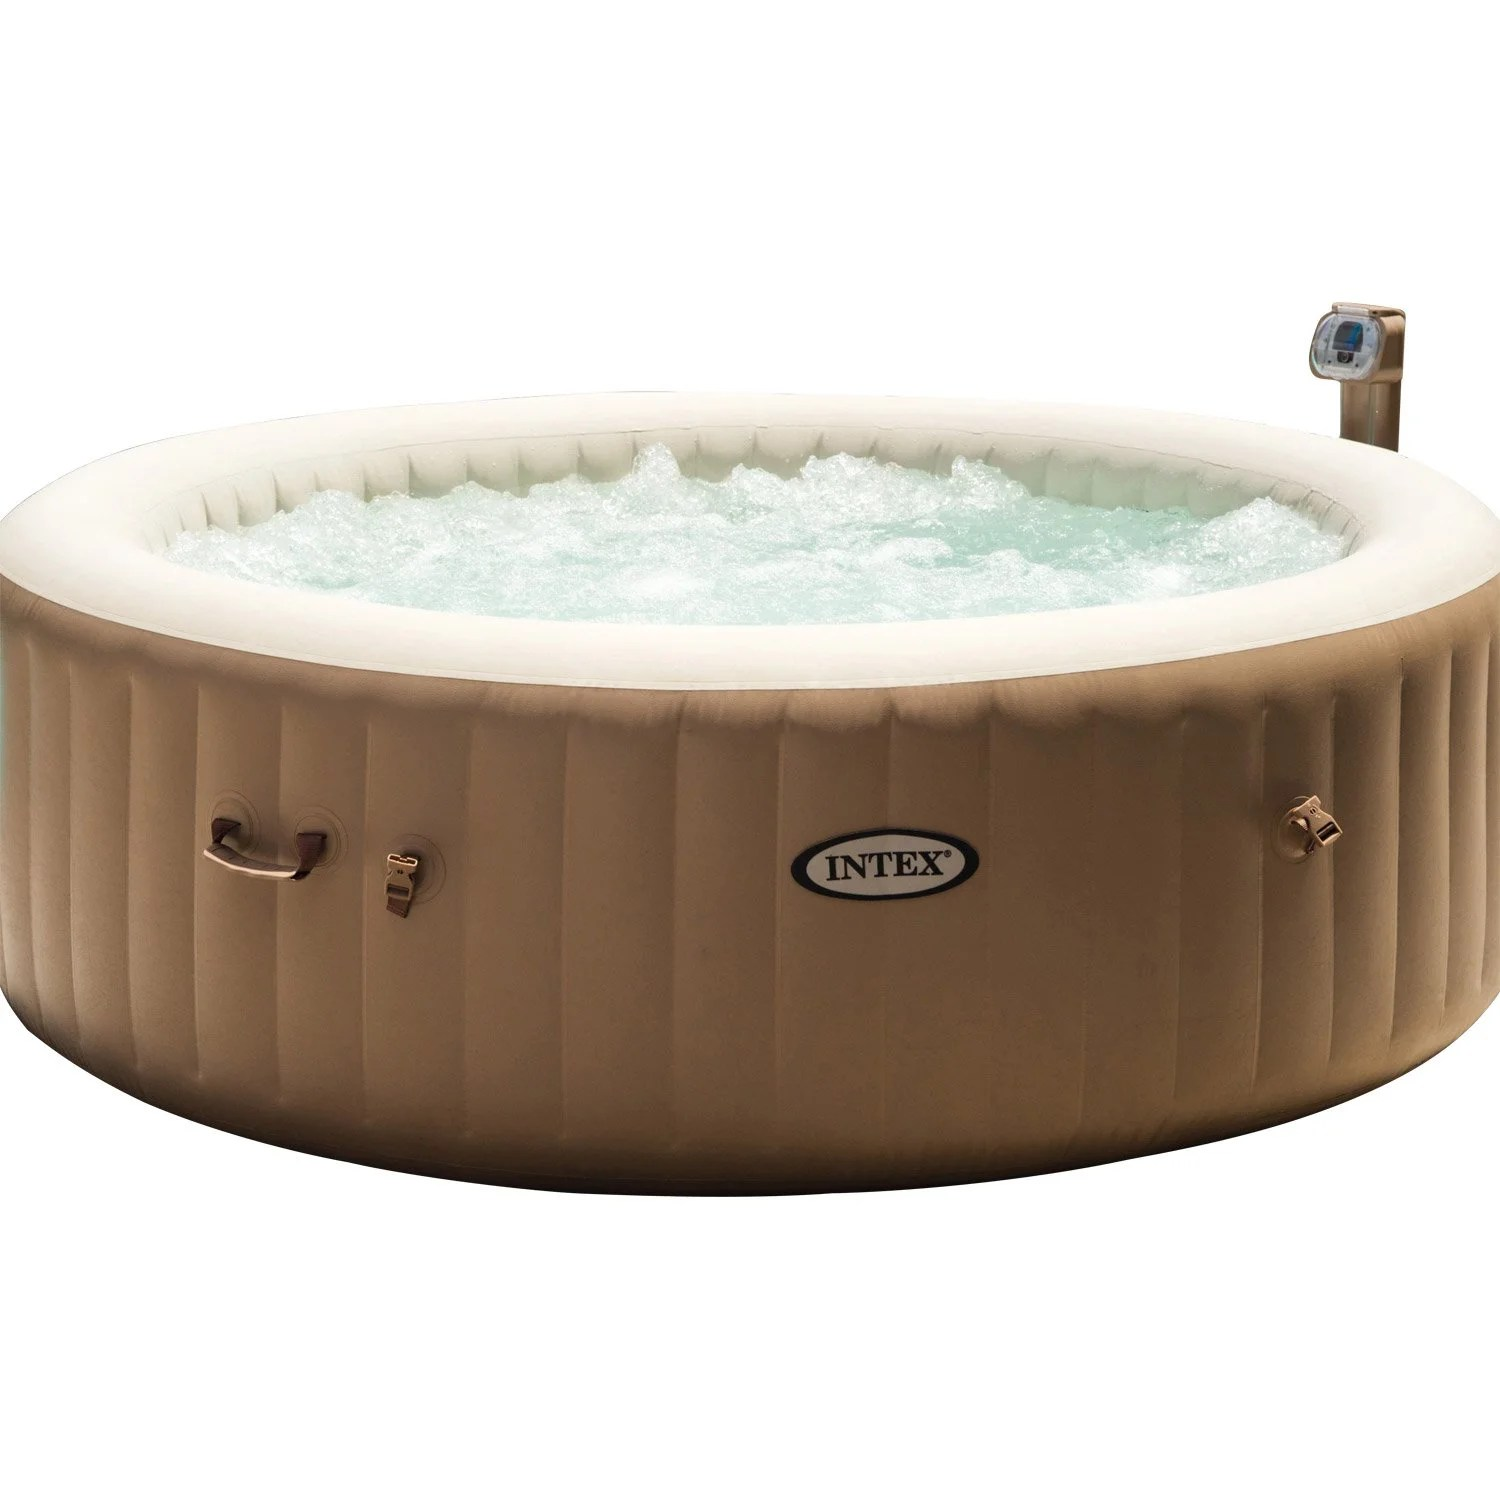 Spa Exterieur La Rochelle Spa Gonflable Intex Pure Spa Bulles Rond 6 Places Assises